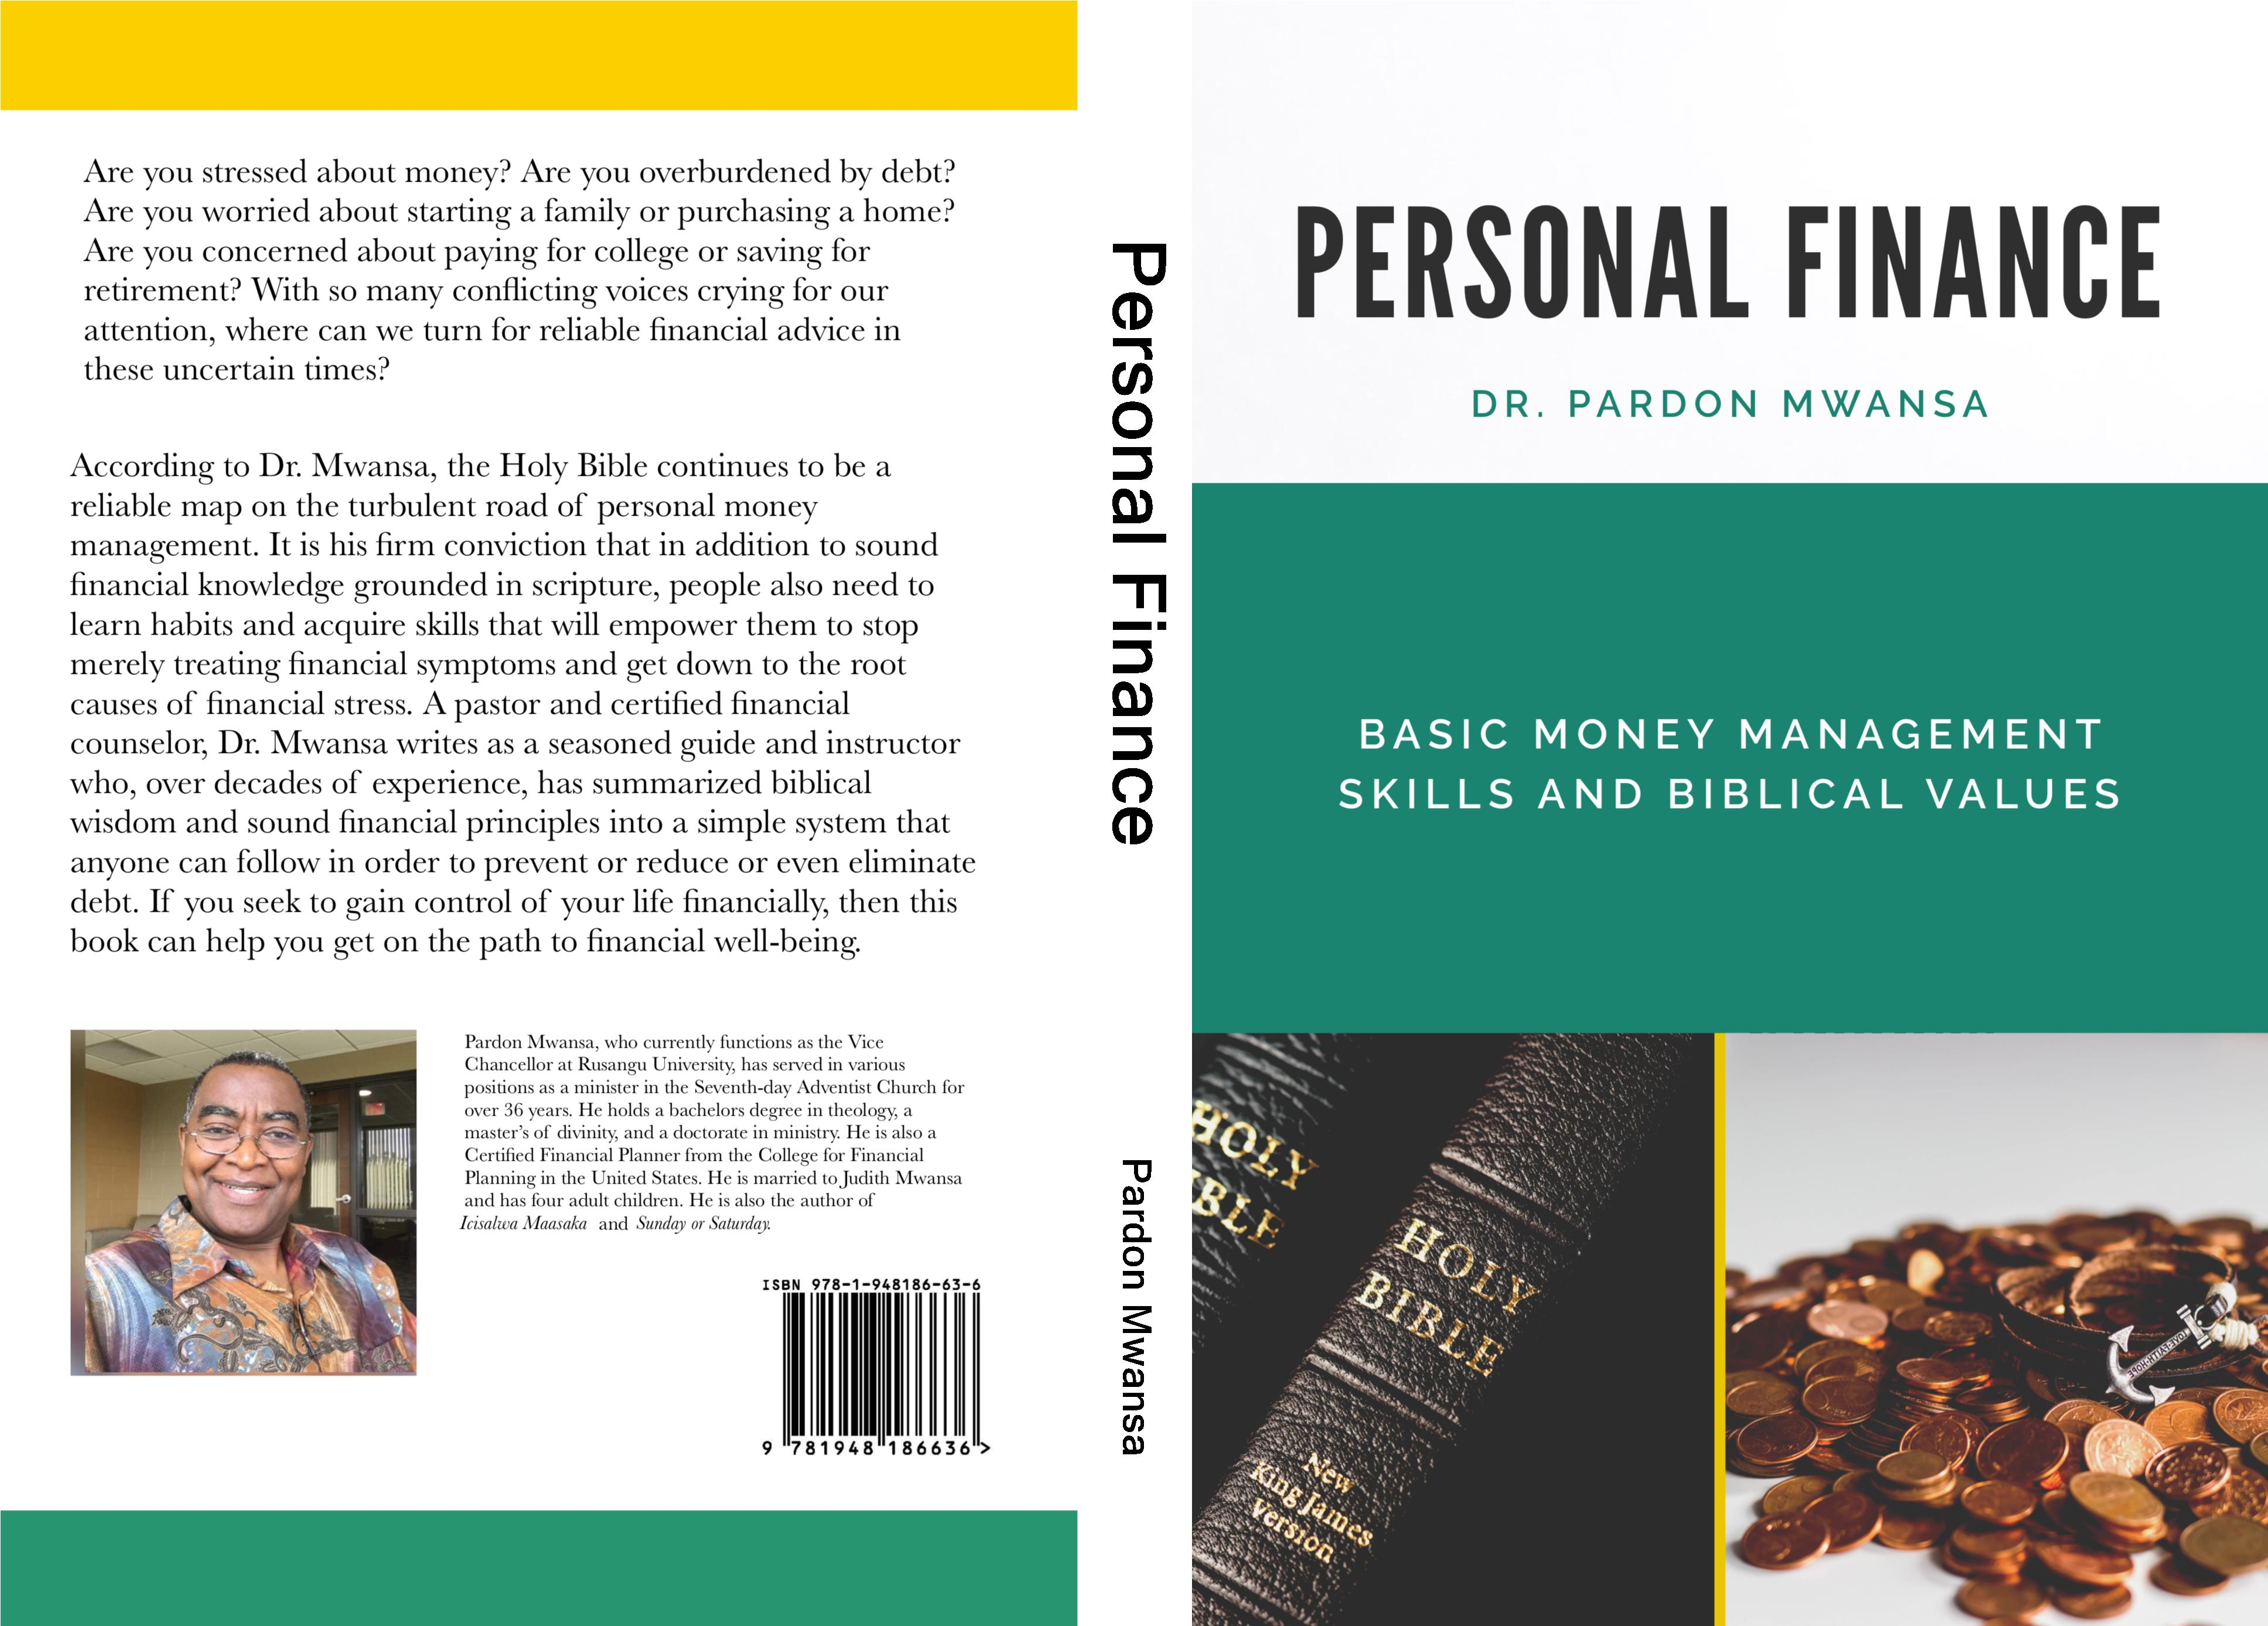 Personal Finance cover image